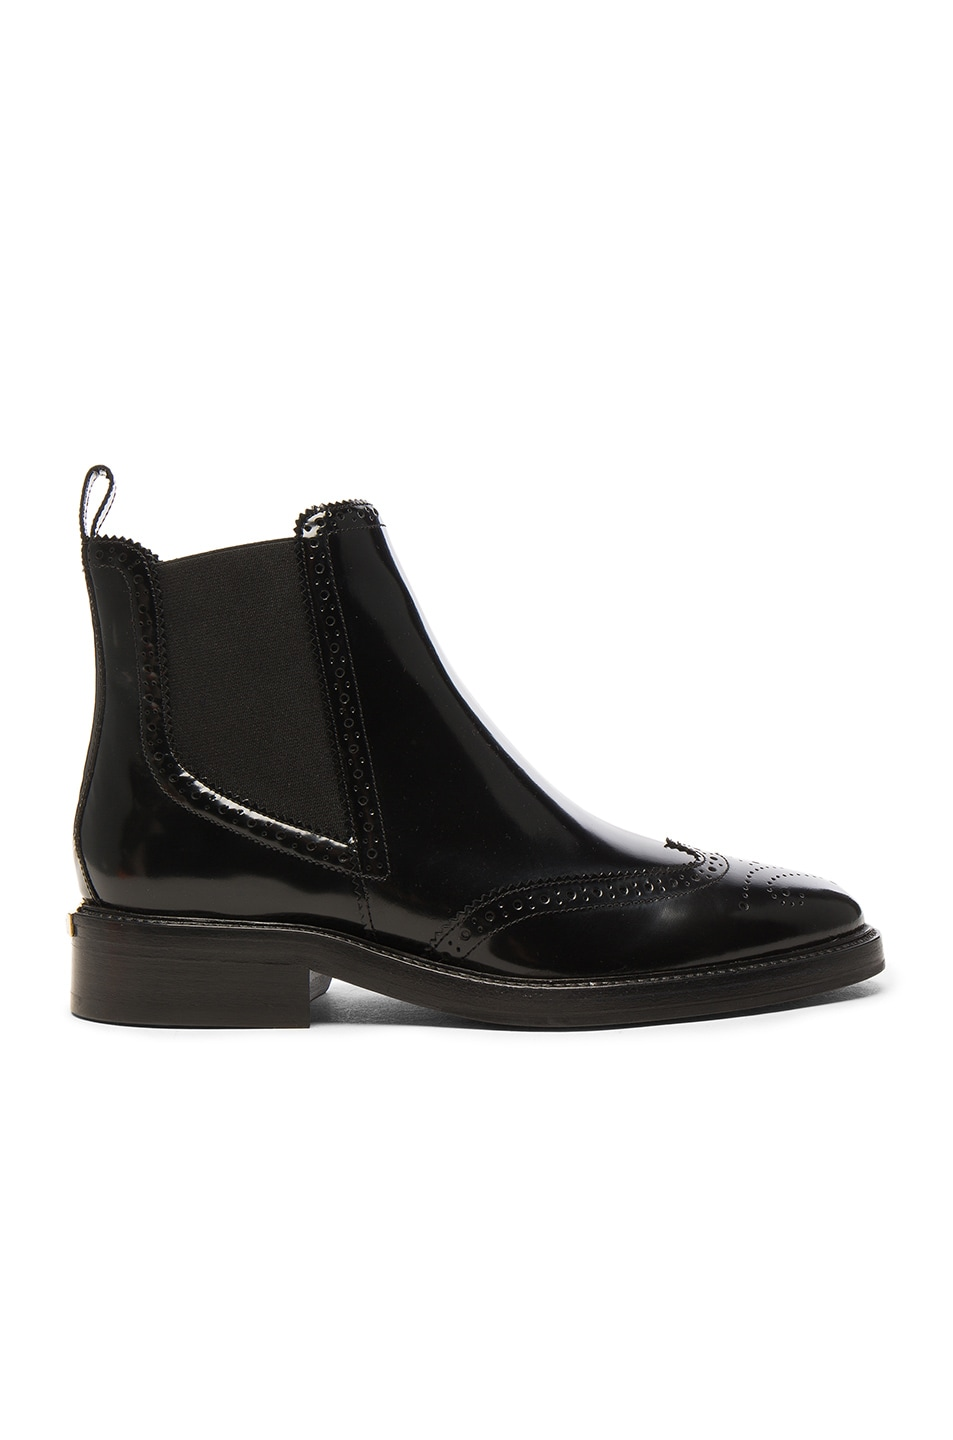 Image 1 of Burberry Leather Bactonul Boots in Black